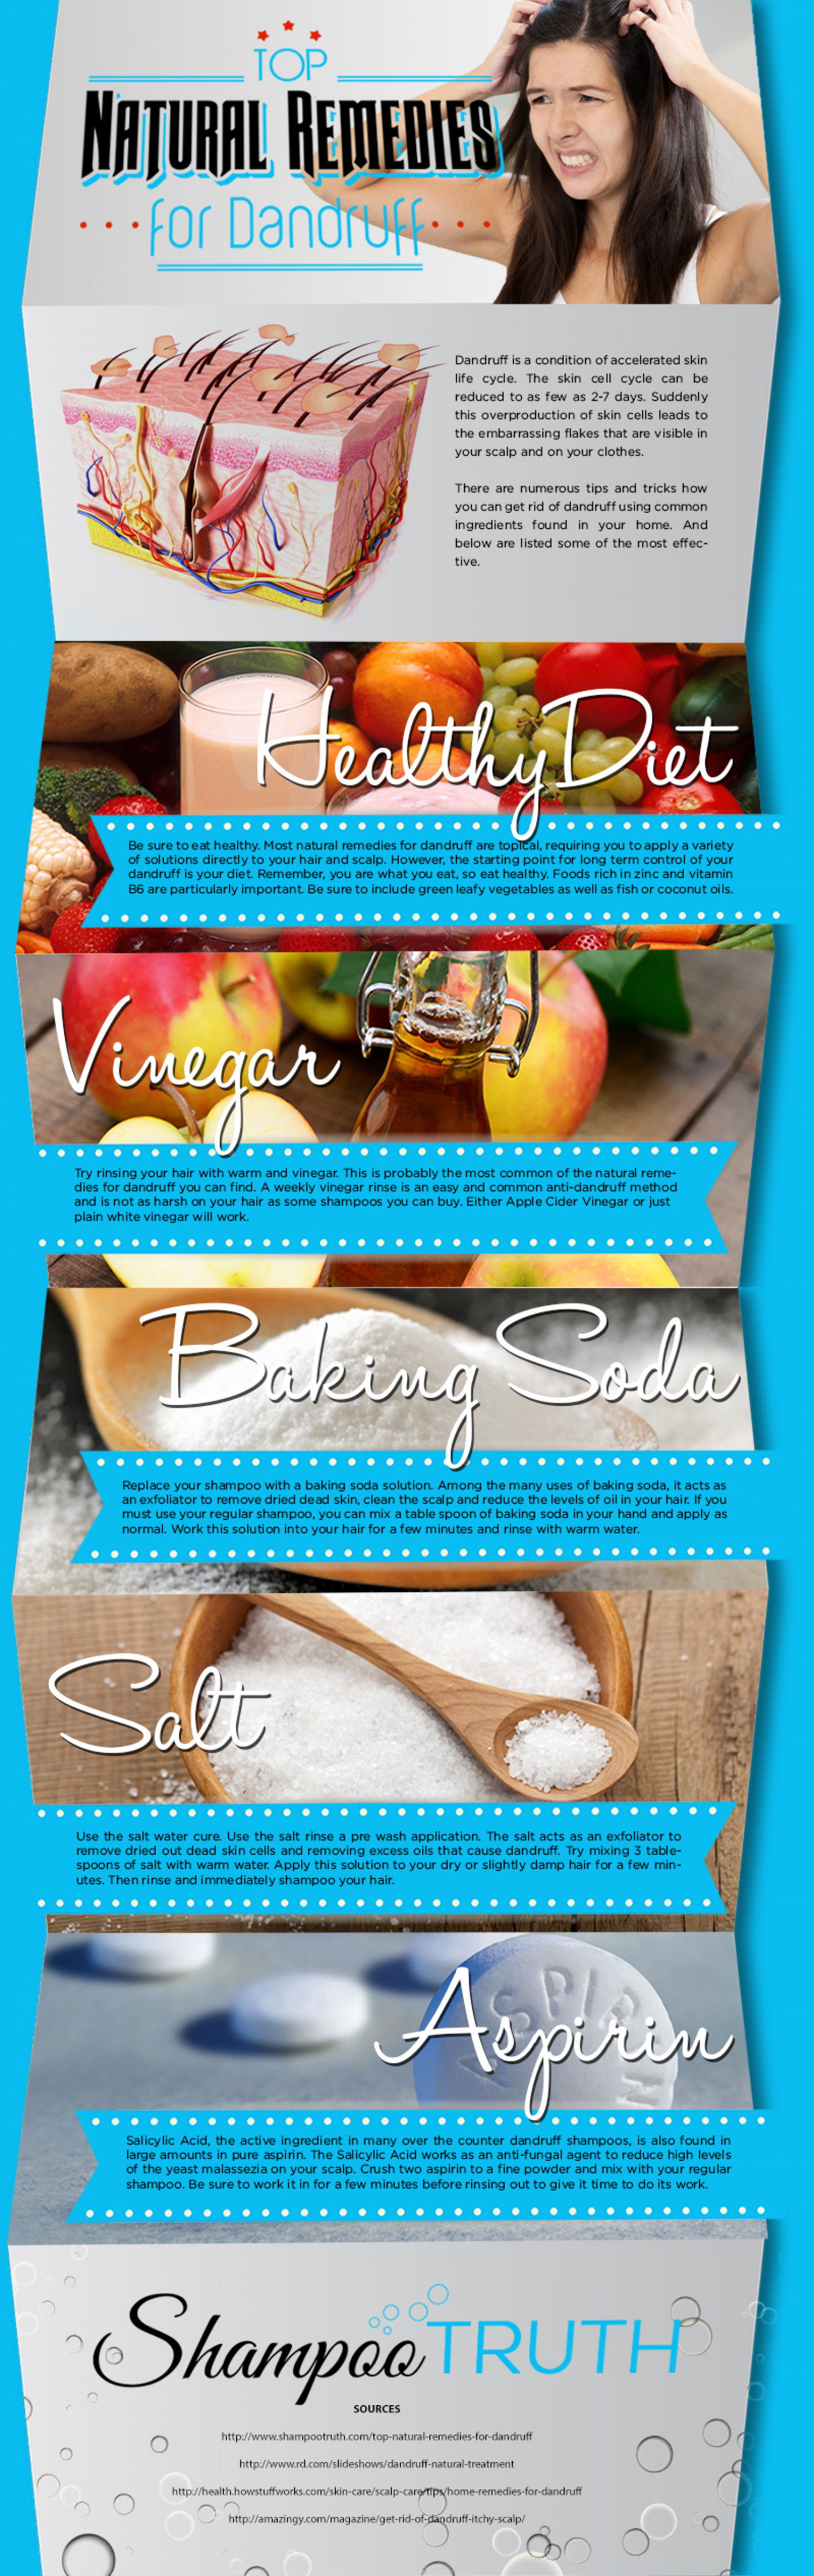 Top Natural Remedies for Dandruff Infographic